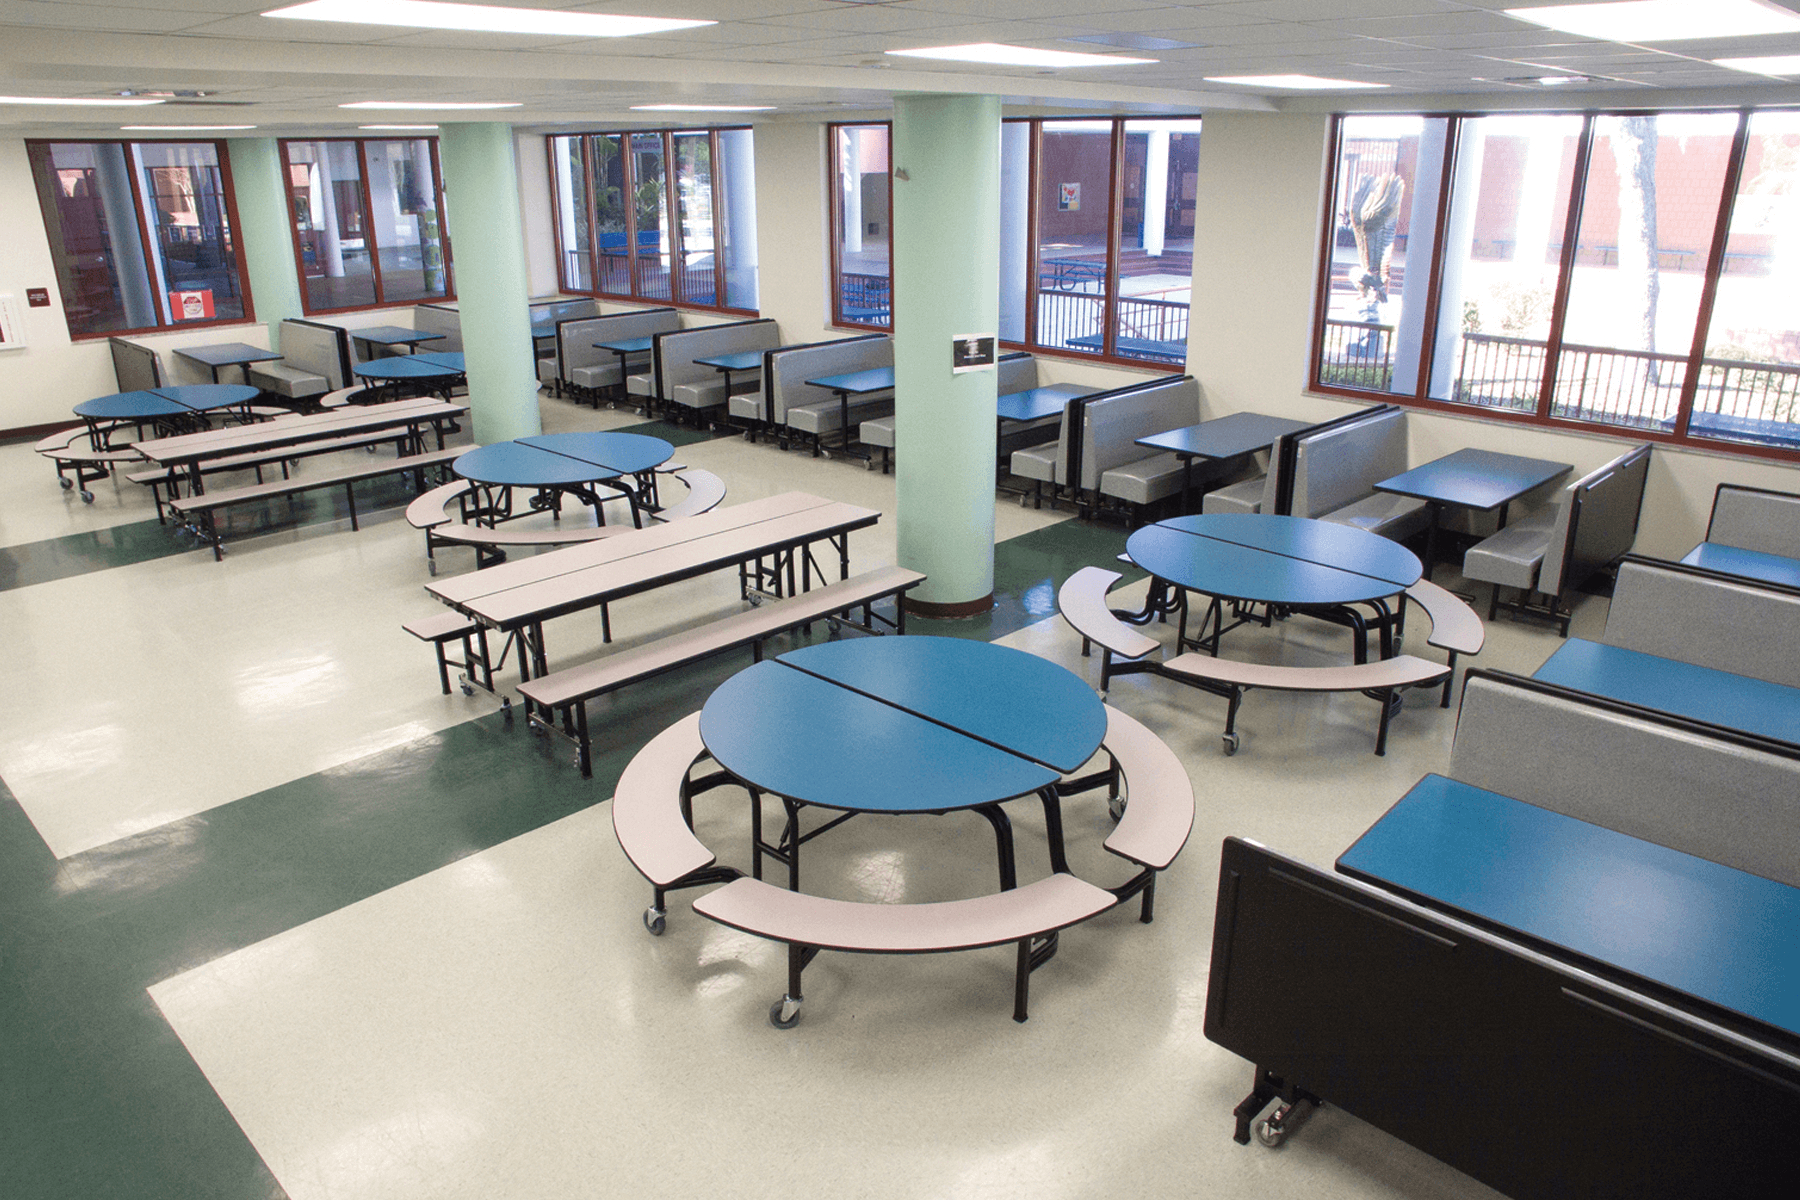 Modern foldable tables with many shapes, colors, and designs.